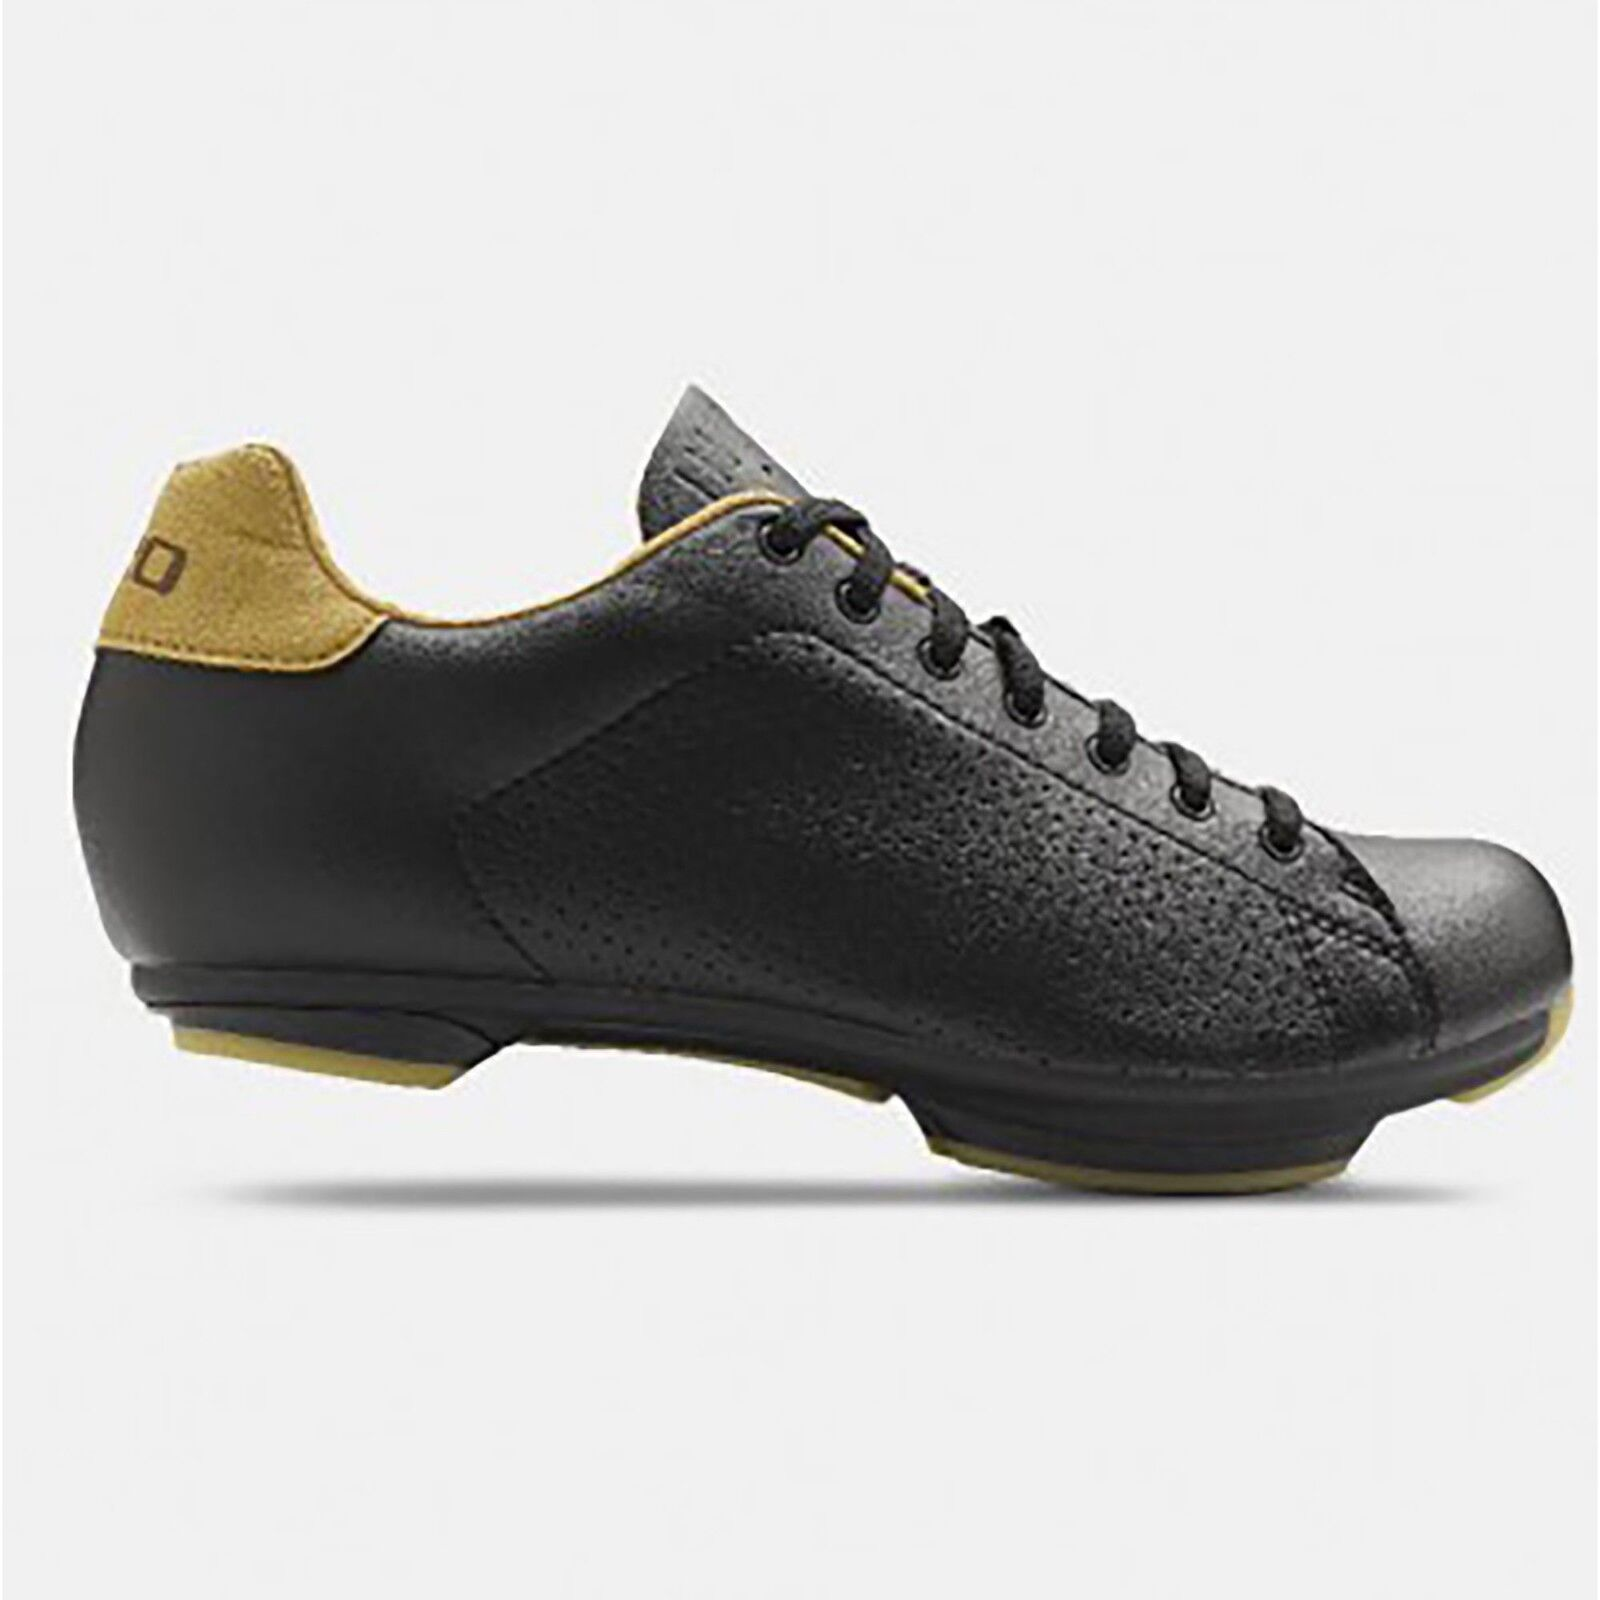 GIRO CIVILA womens road cycling shoes for SPD bike cleats Leather look